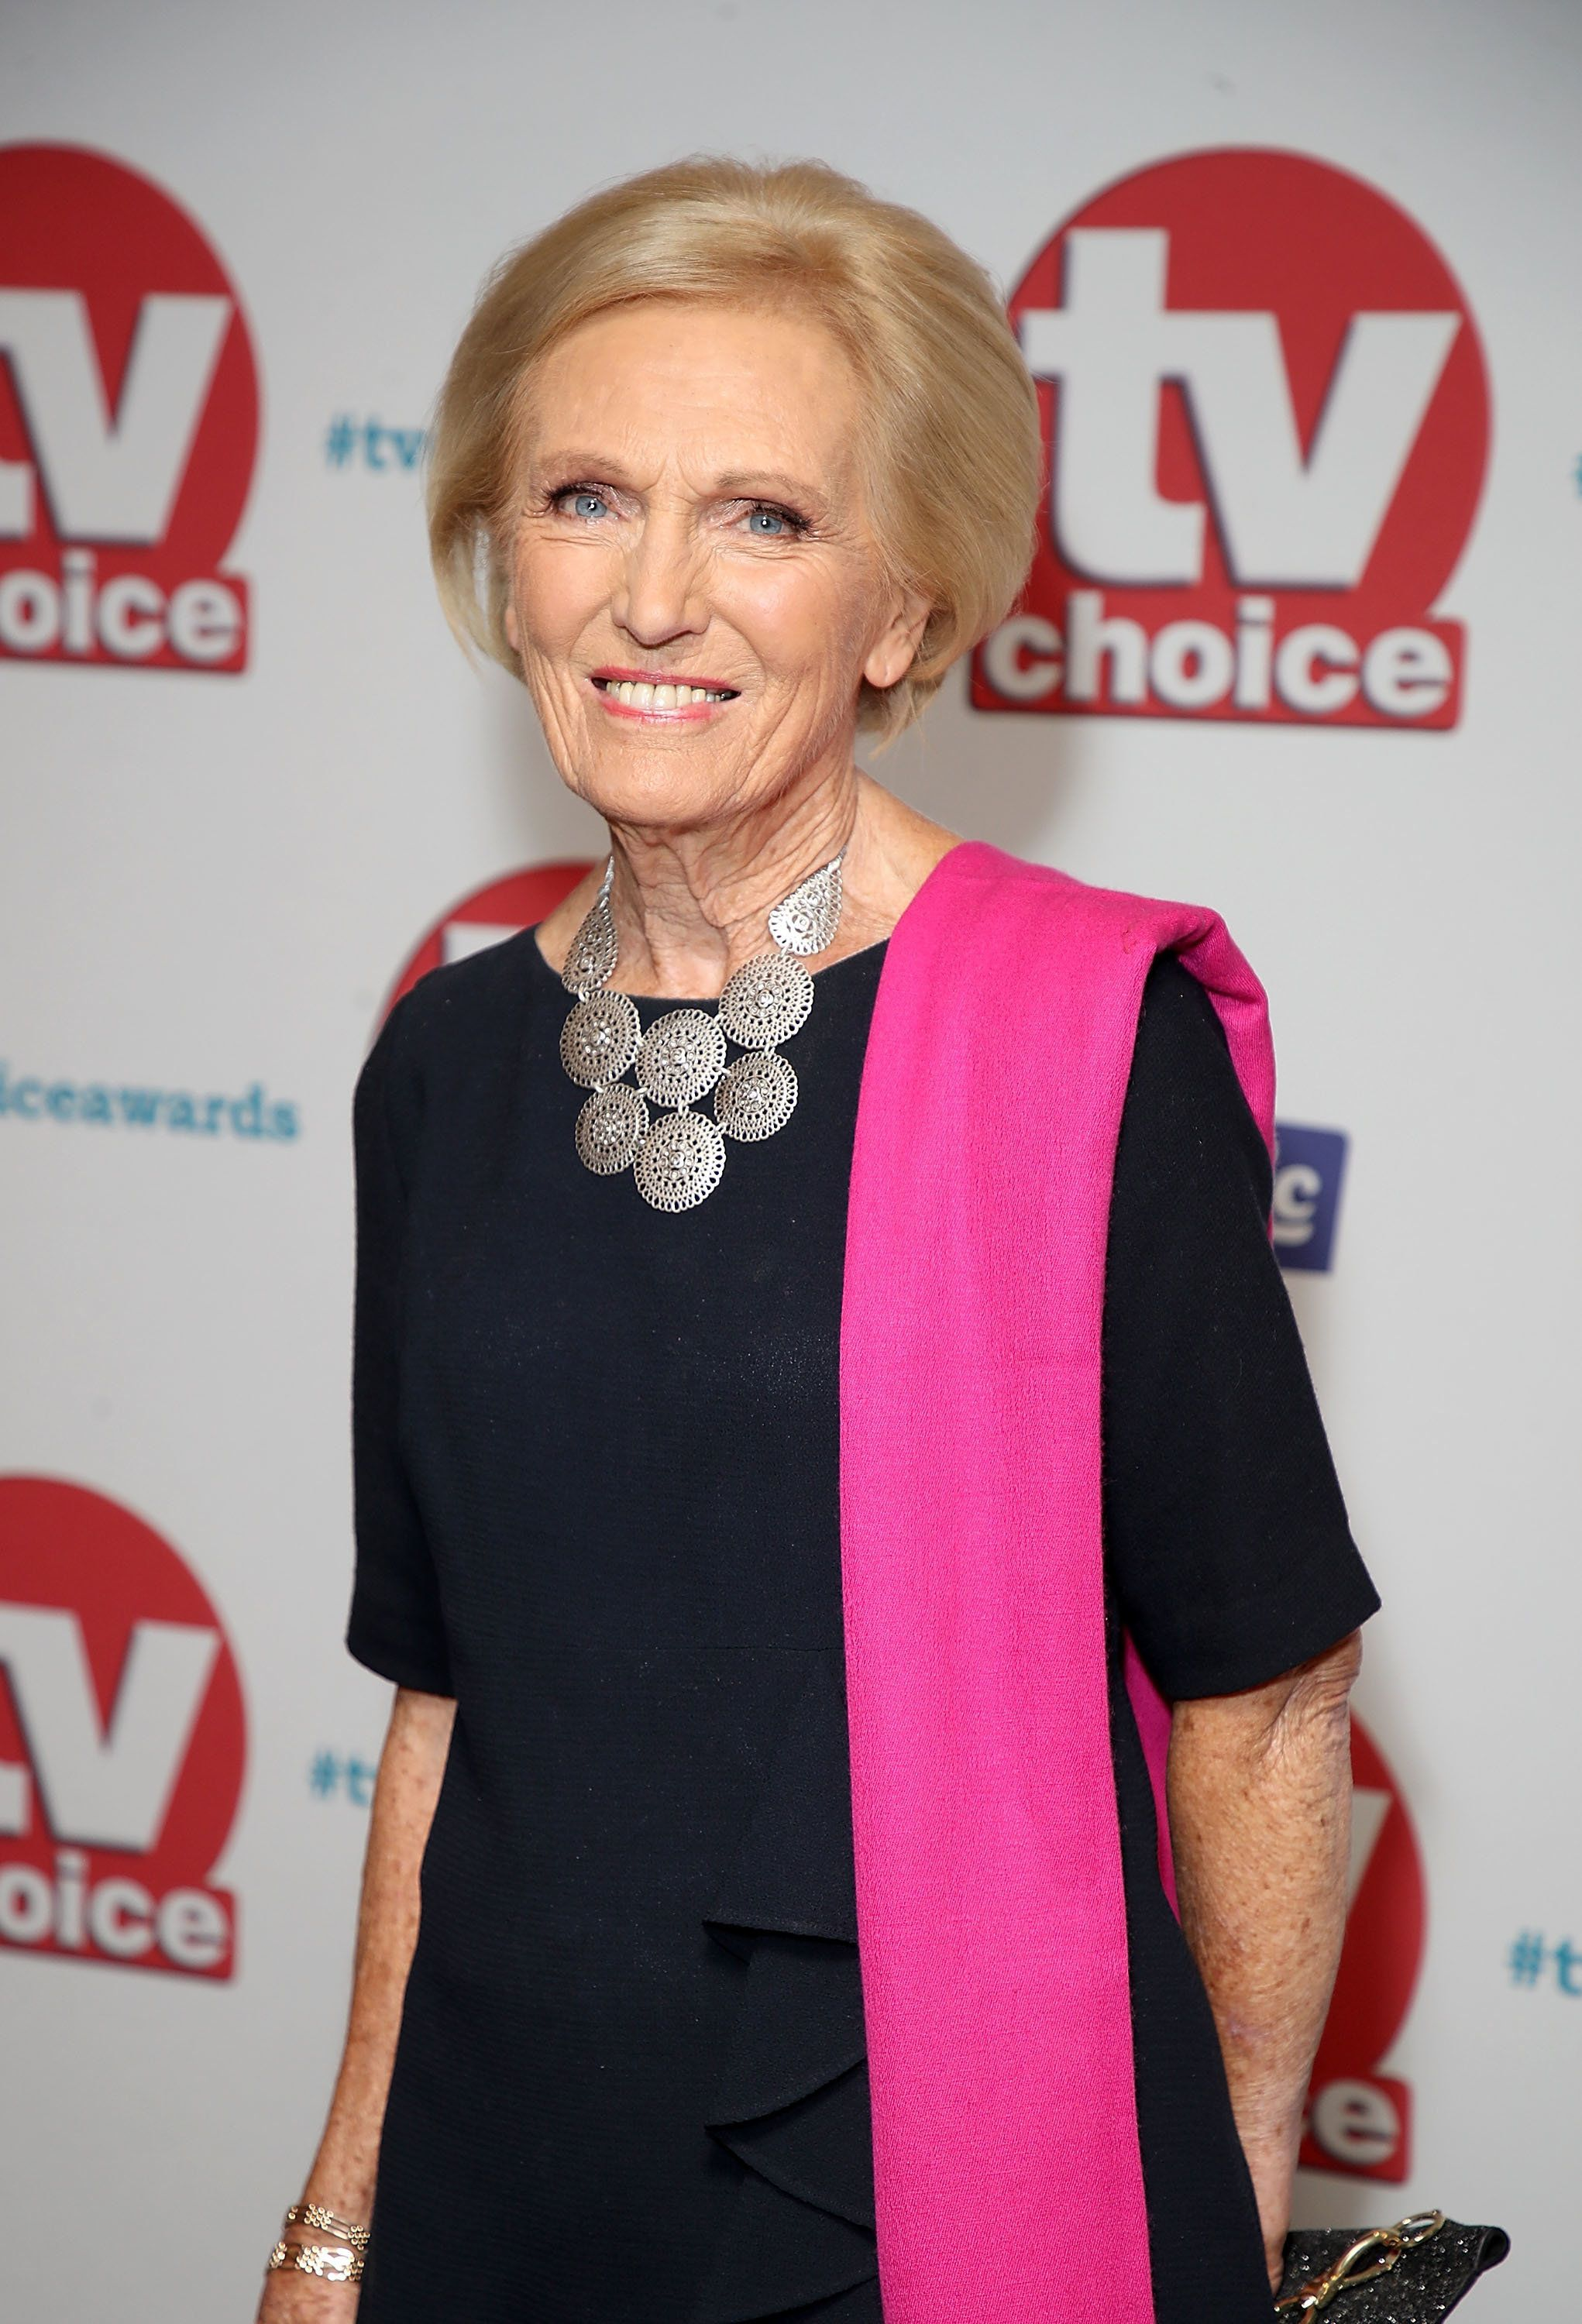 Mary Berry at the TV Choice